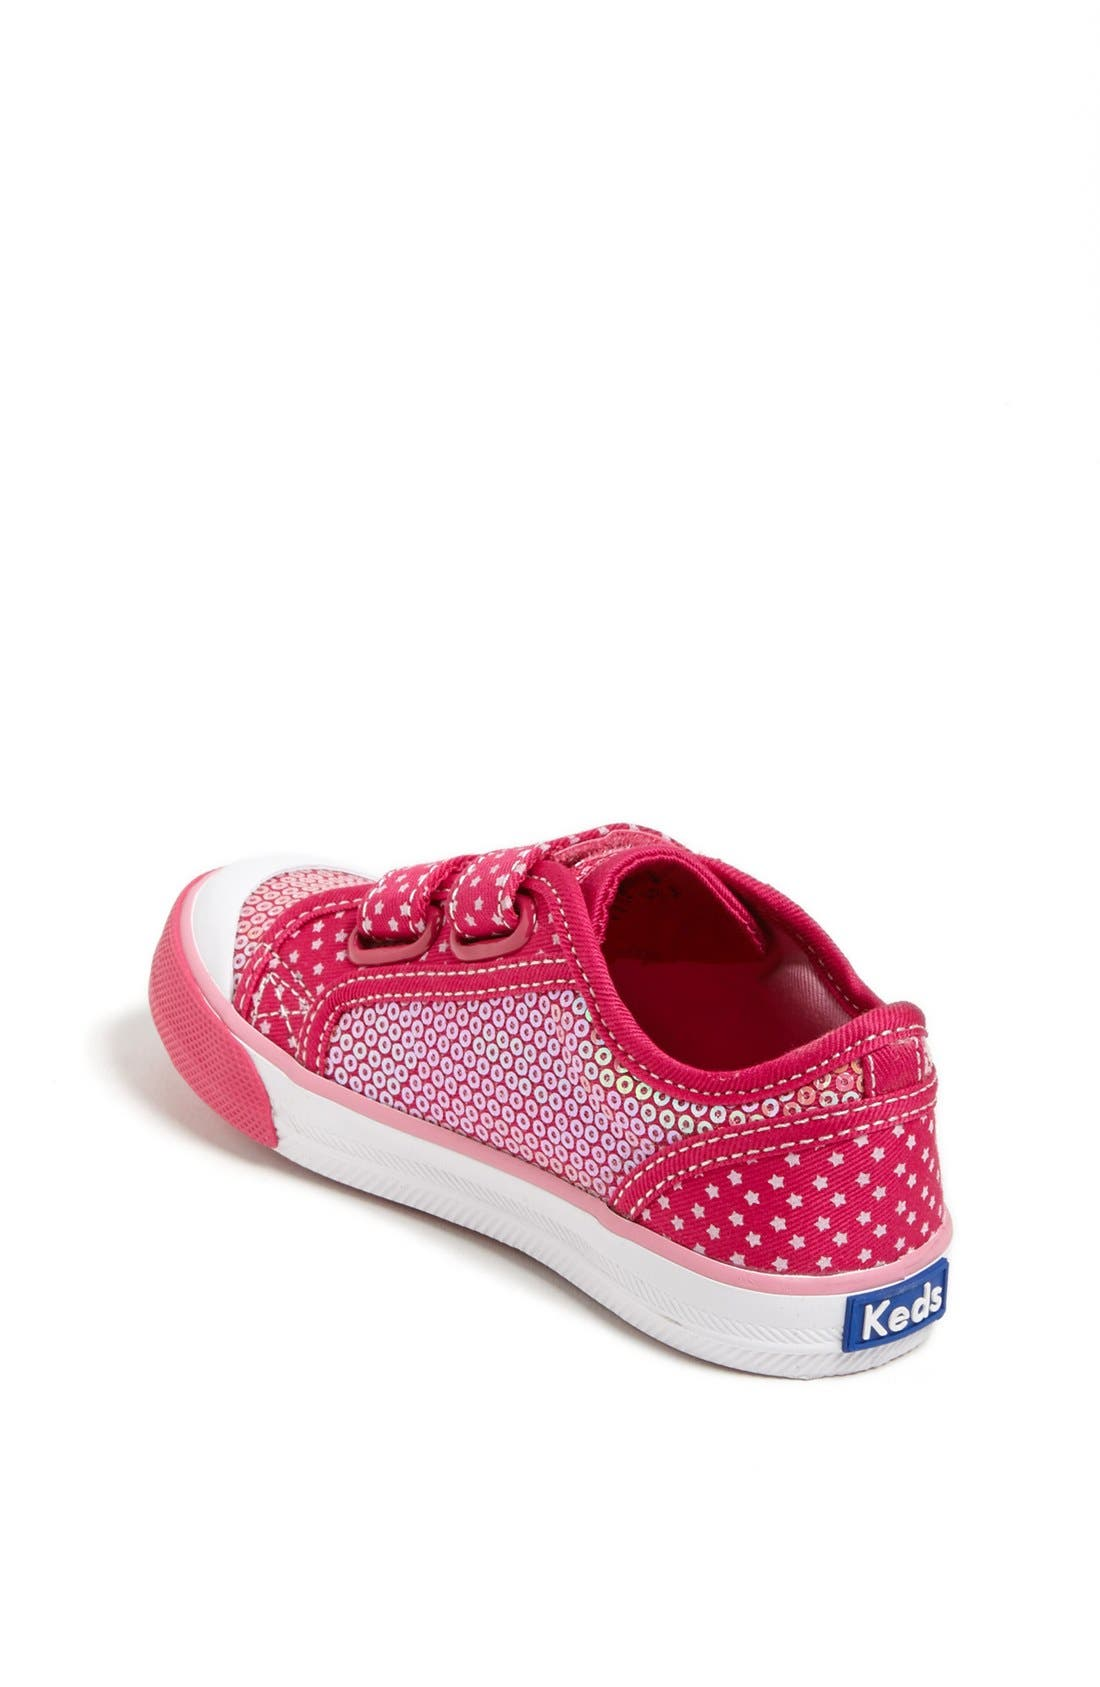 Alternate Image 2  - Keds® 'Sparklynne' Sneaker (Walker & Toddler)